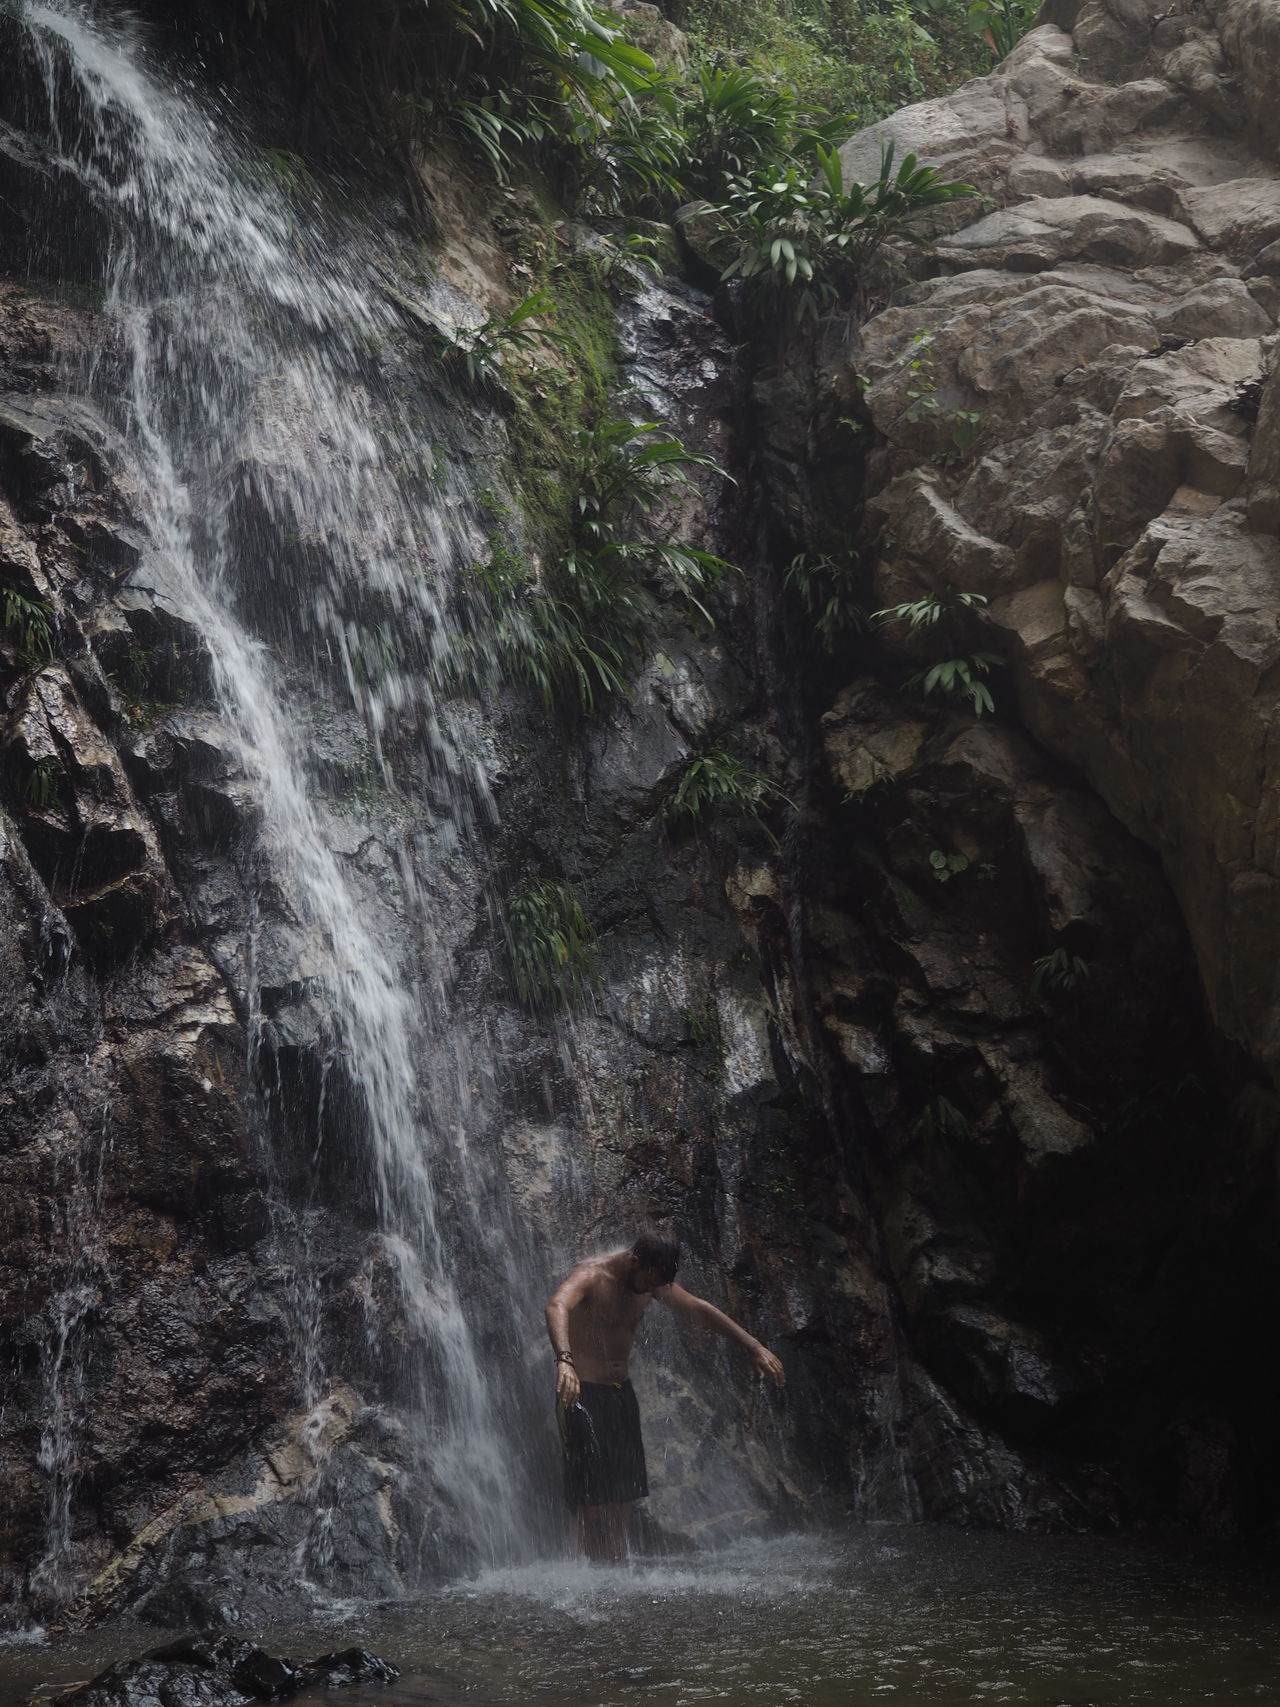 Beauty In Nature Hiking Mountains Nature Non-urban Scene Outdoors Rock Formation Scenics Water Waterfall